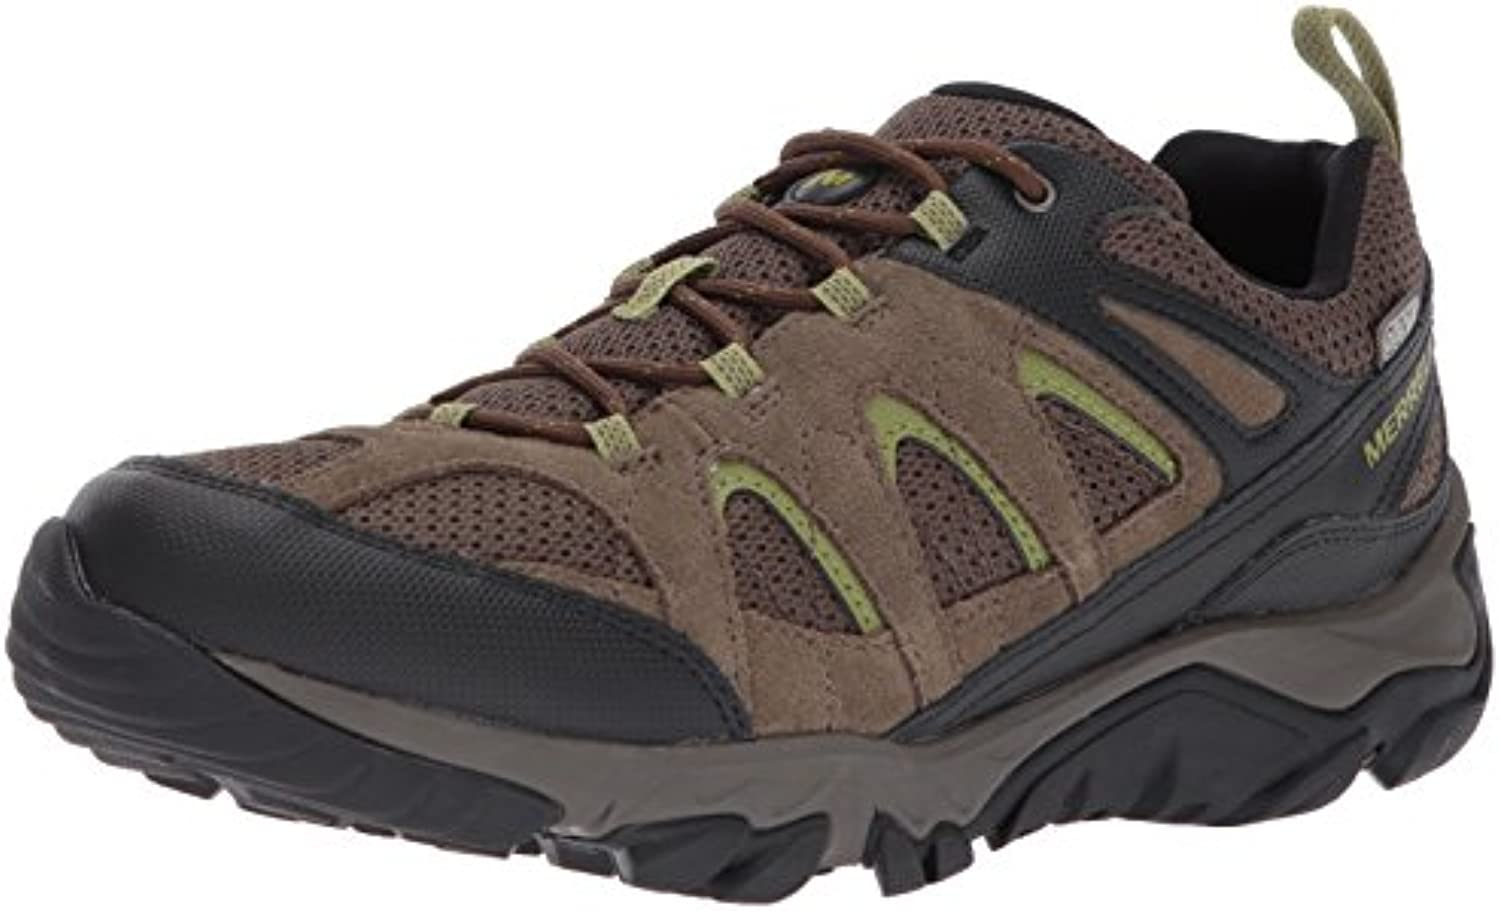 Merrell Men's Outmost Vent Waterproof Hiking Shoe